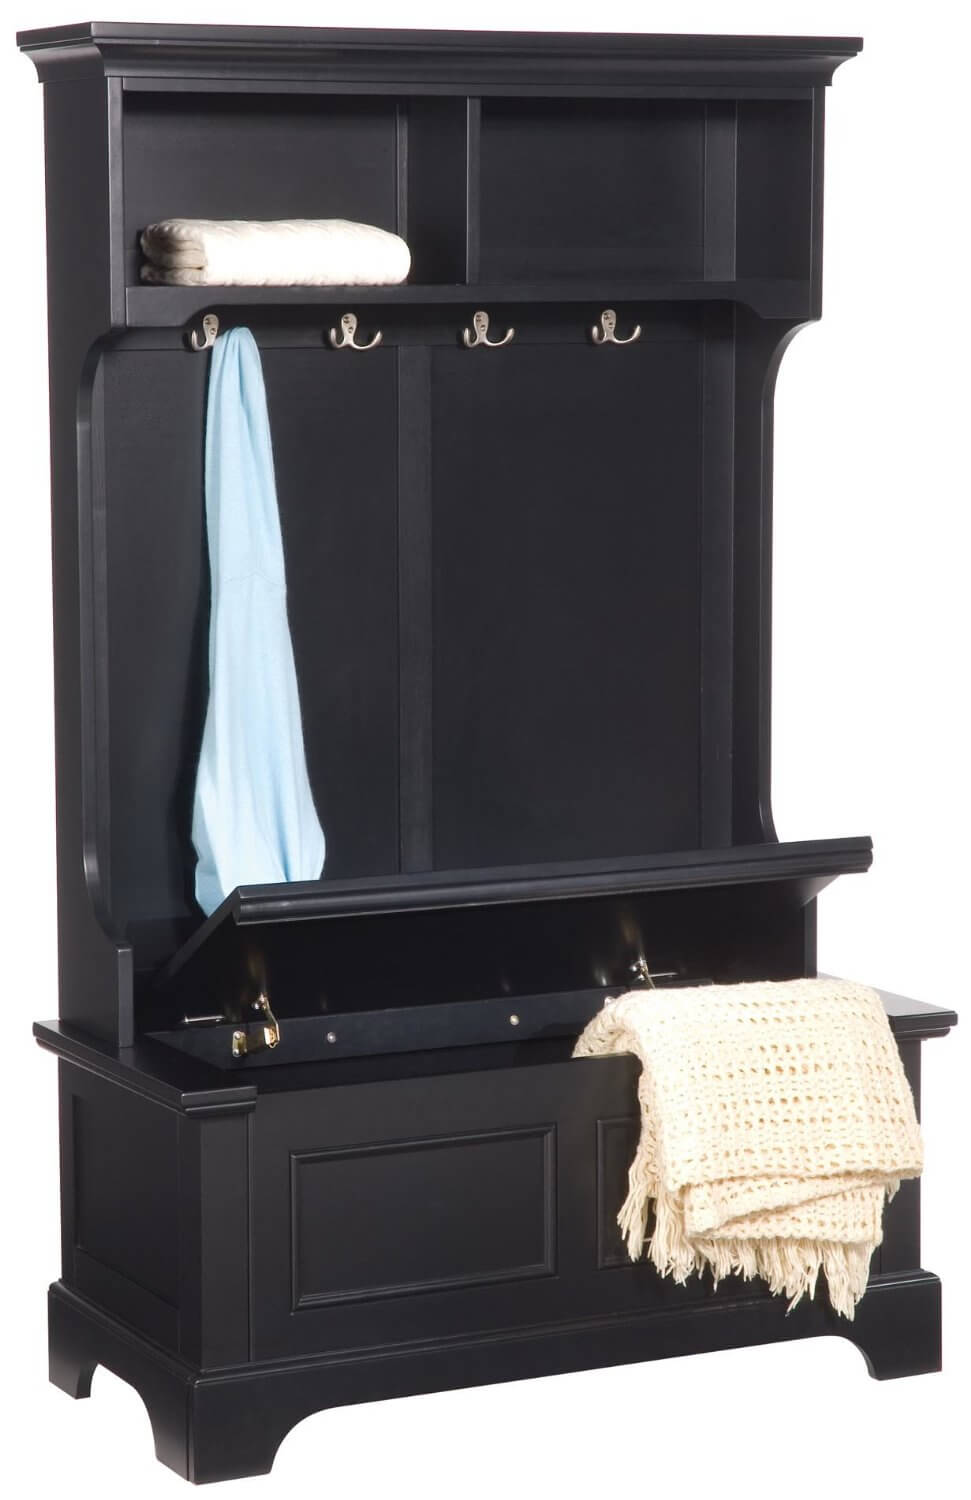 Wonderful Elegant This Is A Beautiful Entry Hall Storage Unit With A Storage Bench It  Could Work With Mudroom Storage.